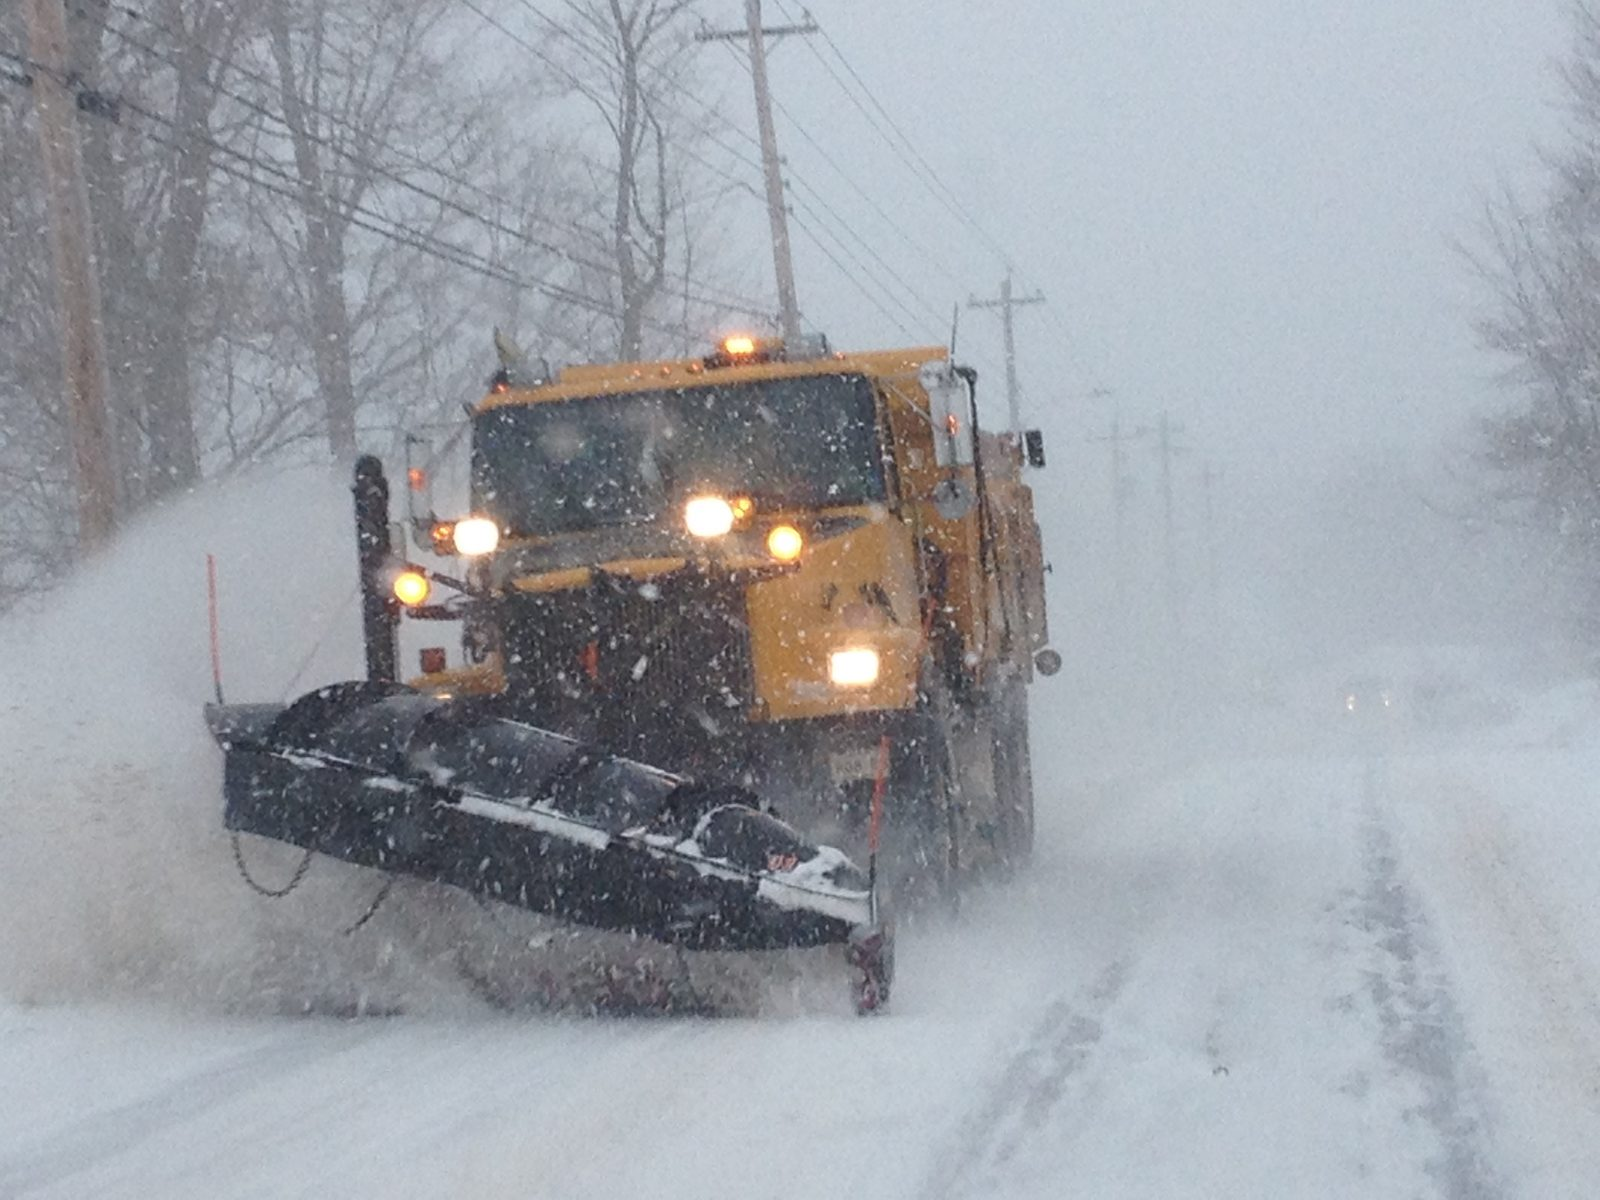 Significant snowfall coming to region